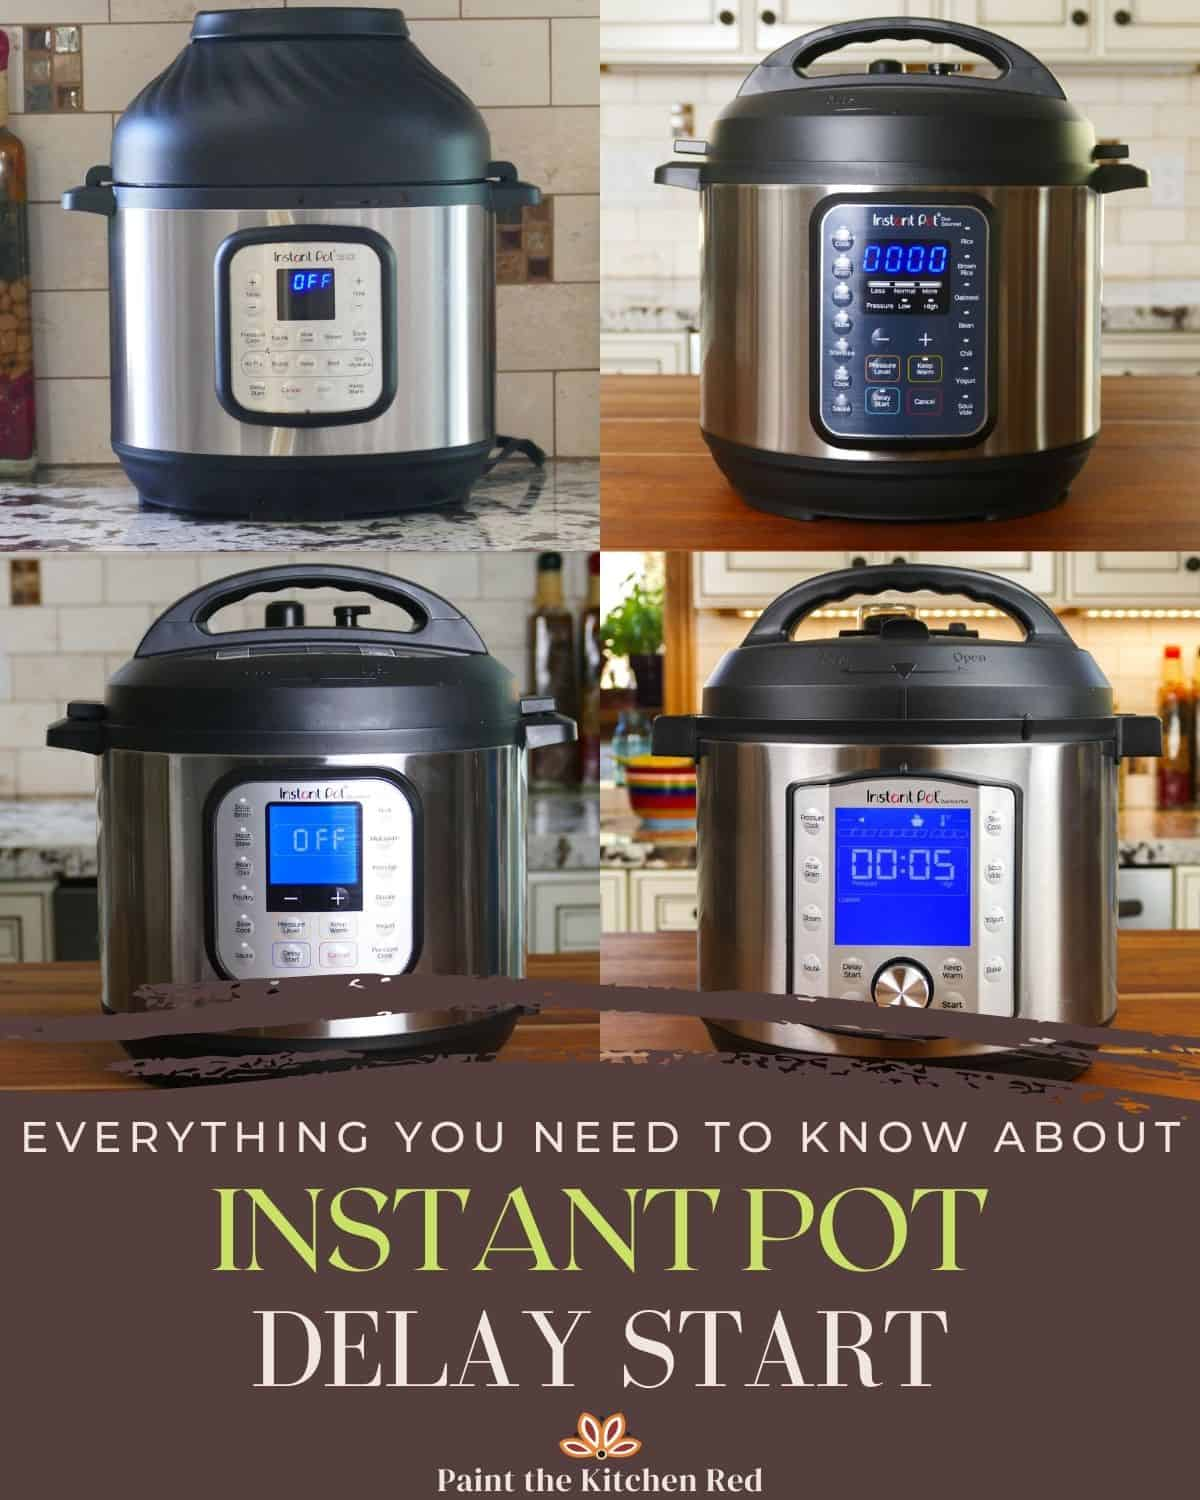 Everything you need to know about Instant Pot Delay Start with collage of four different Instant Pots